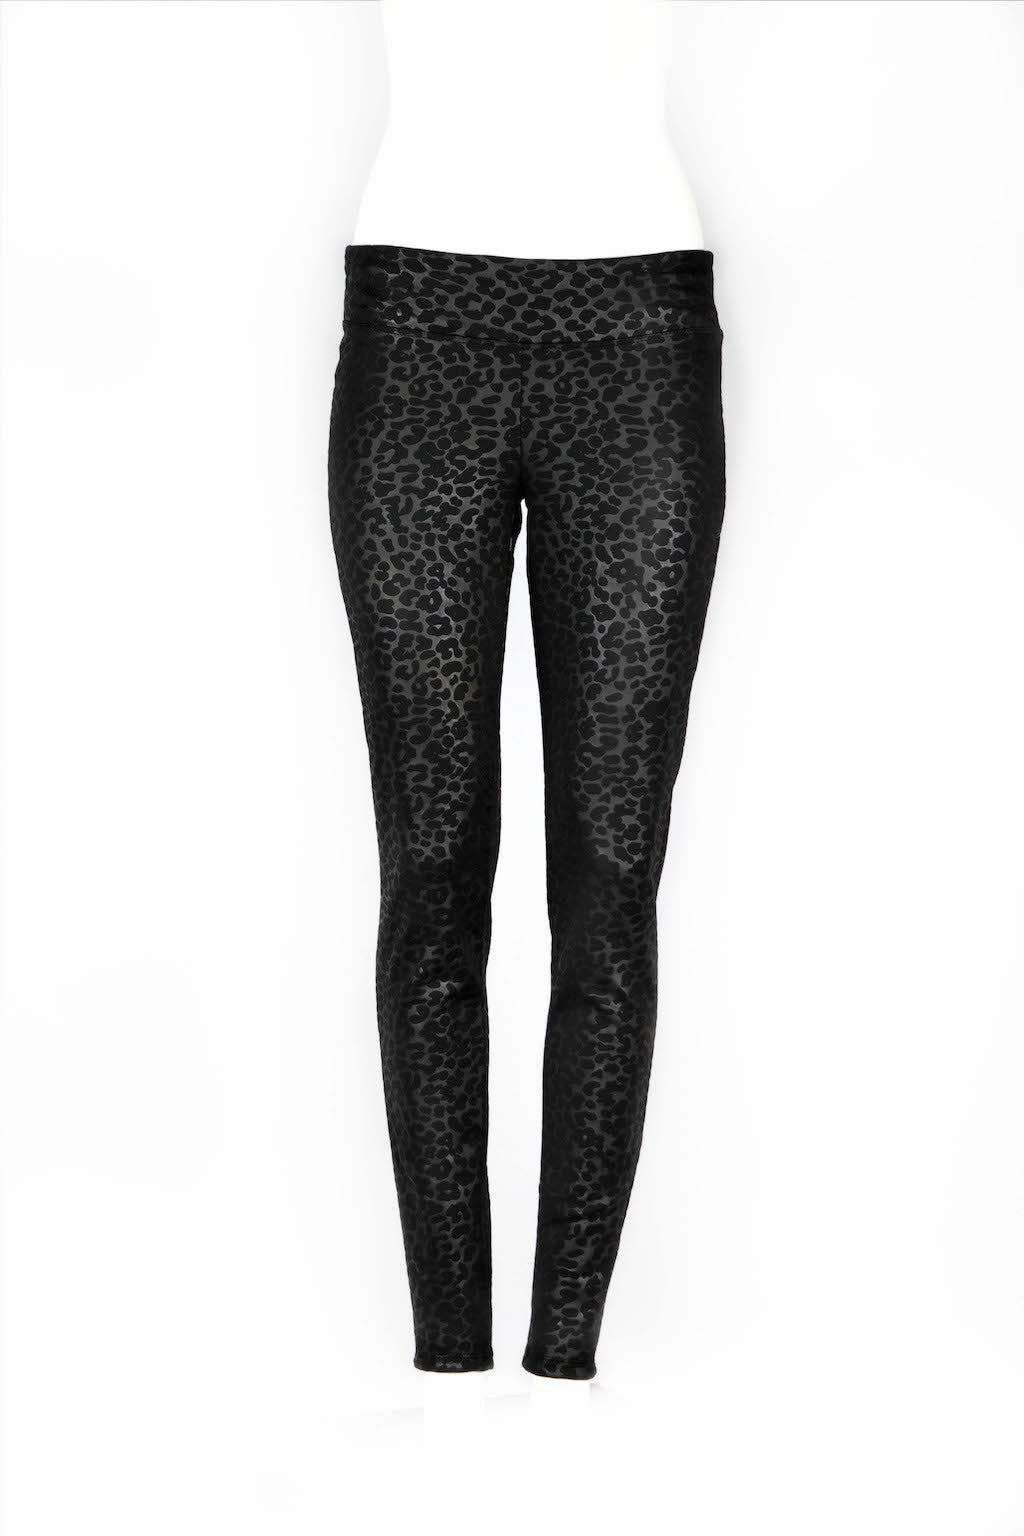 Electra Leopard Fitted Scuba Pants - ANA MARIA KIM  - 7